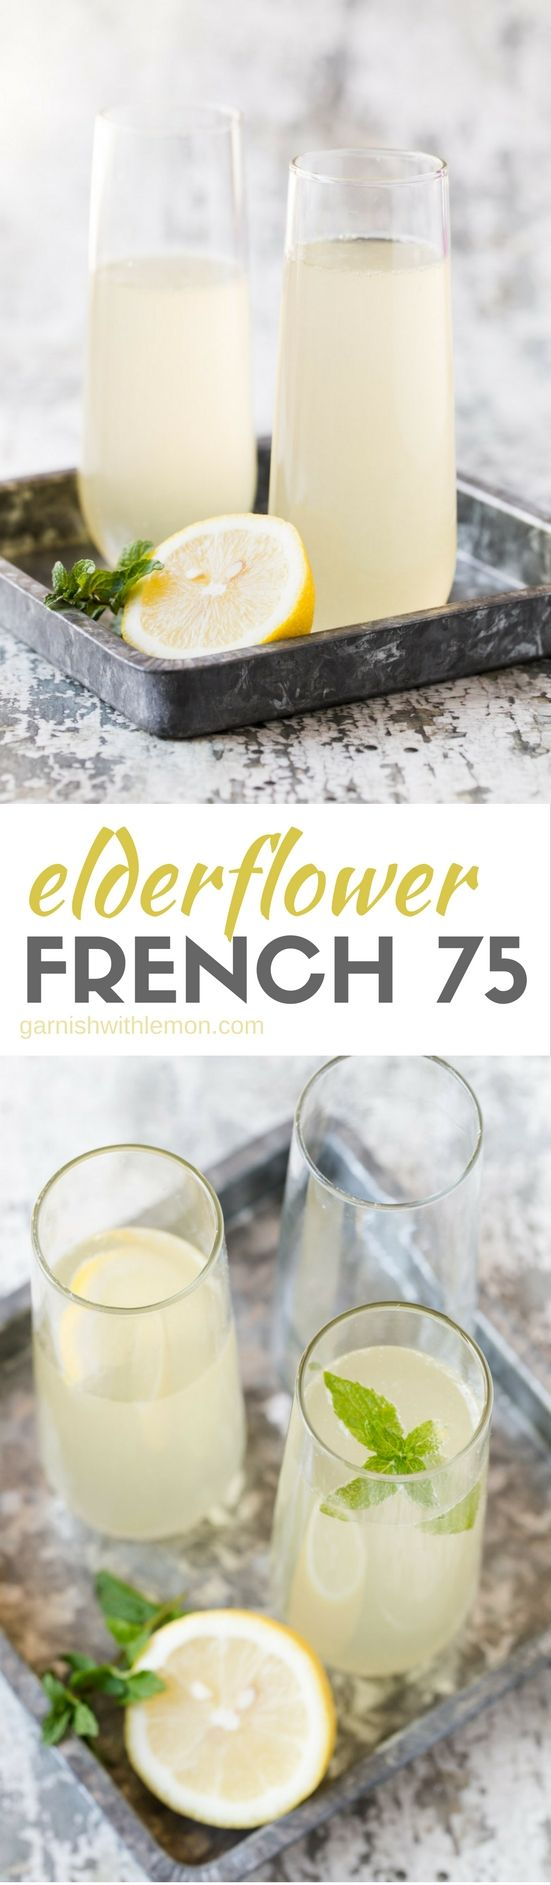 Bubbles just got even better with this easy Elderflower French 75 cocktail recipe.